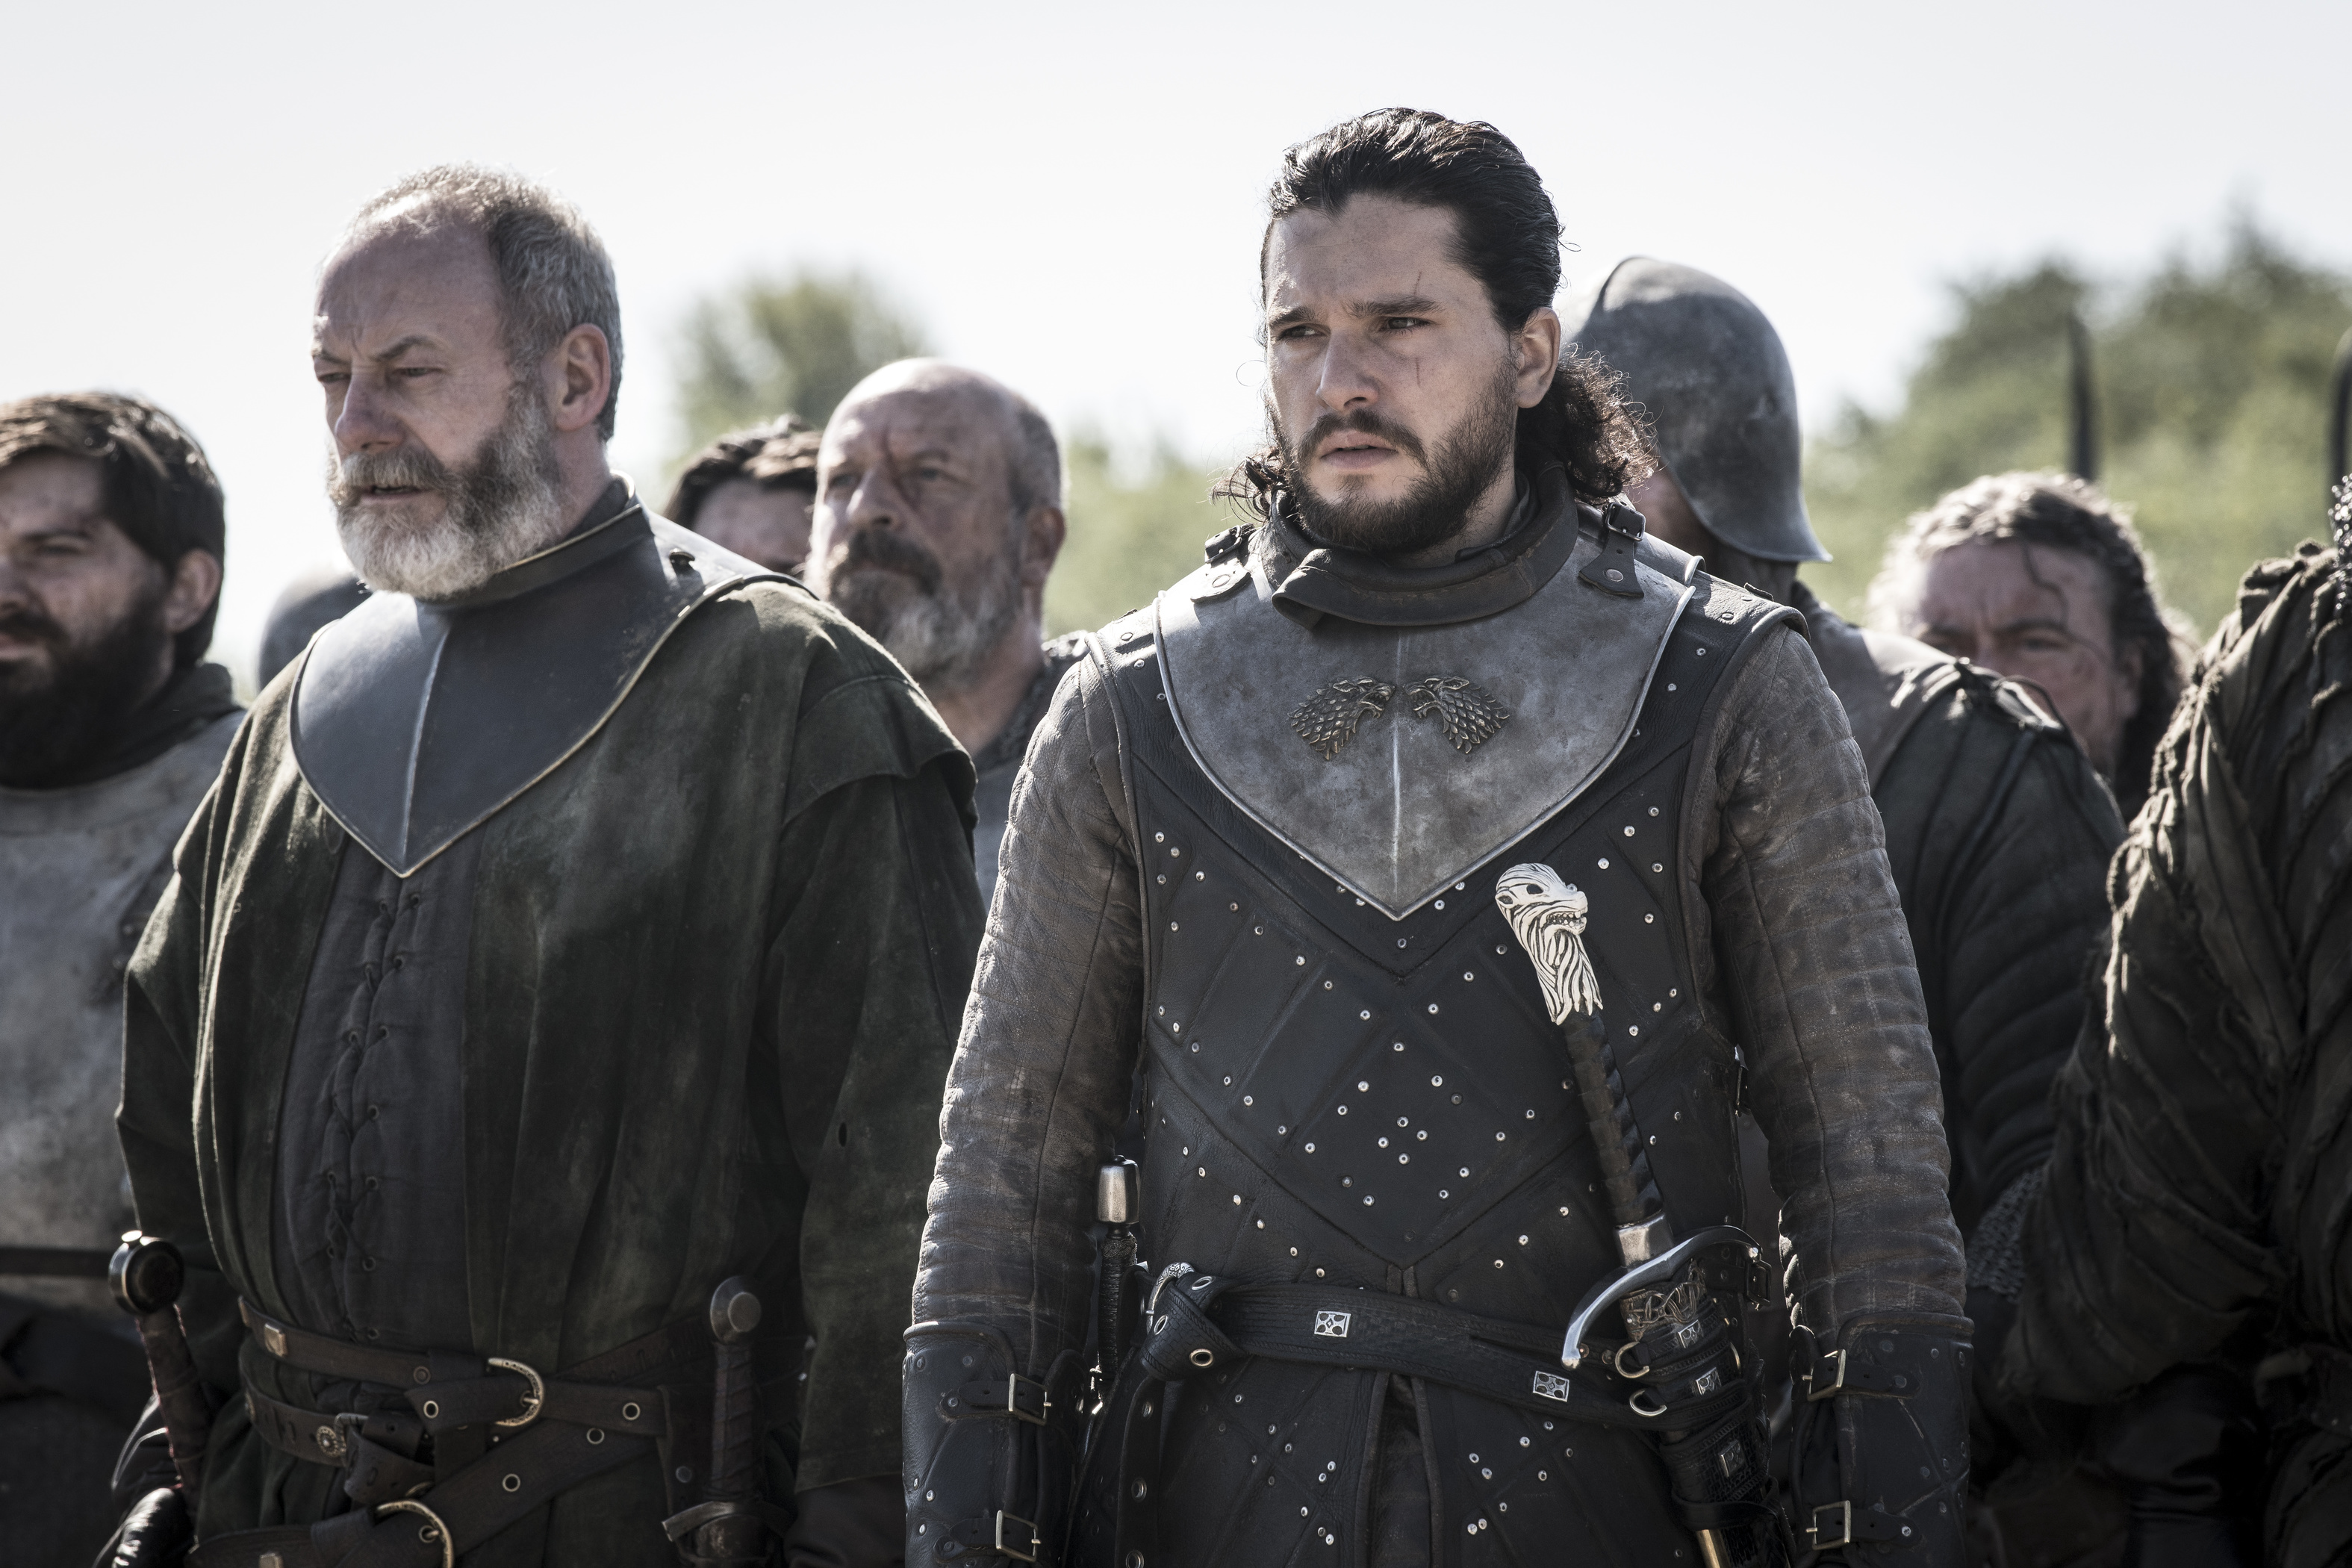 Game of Thrones Jon and Ser Davos